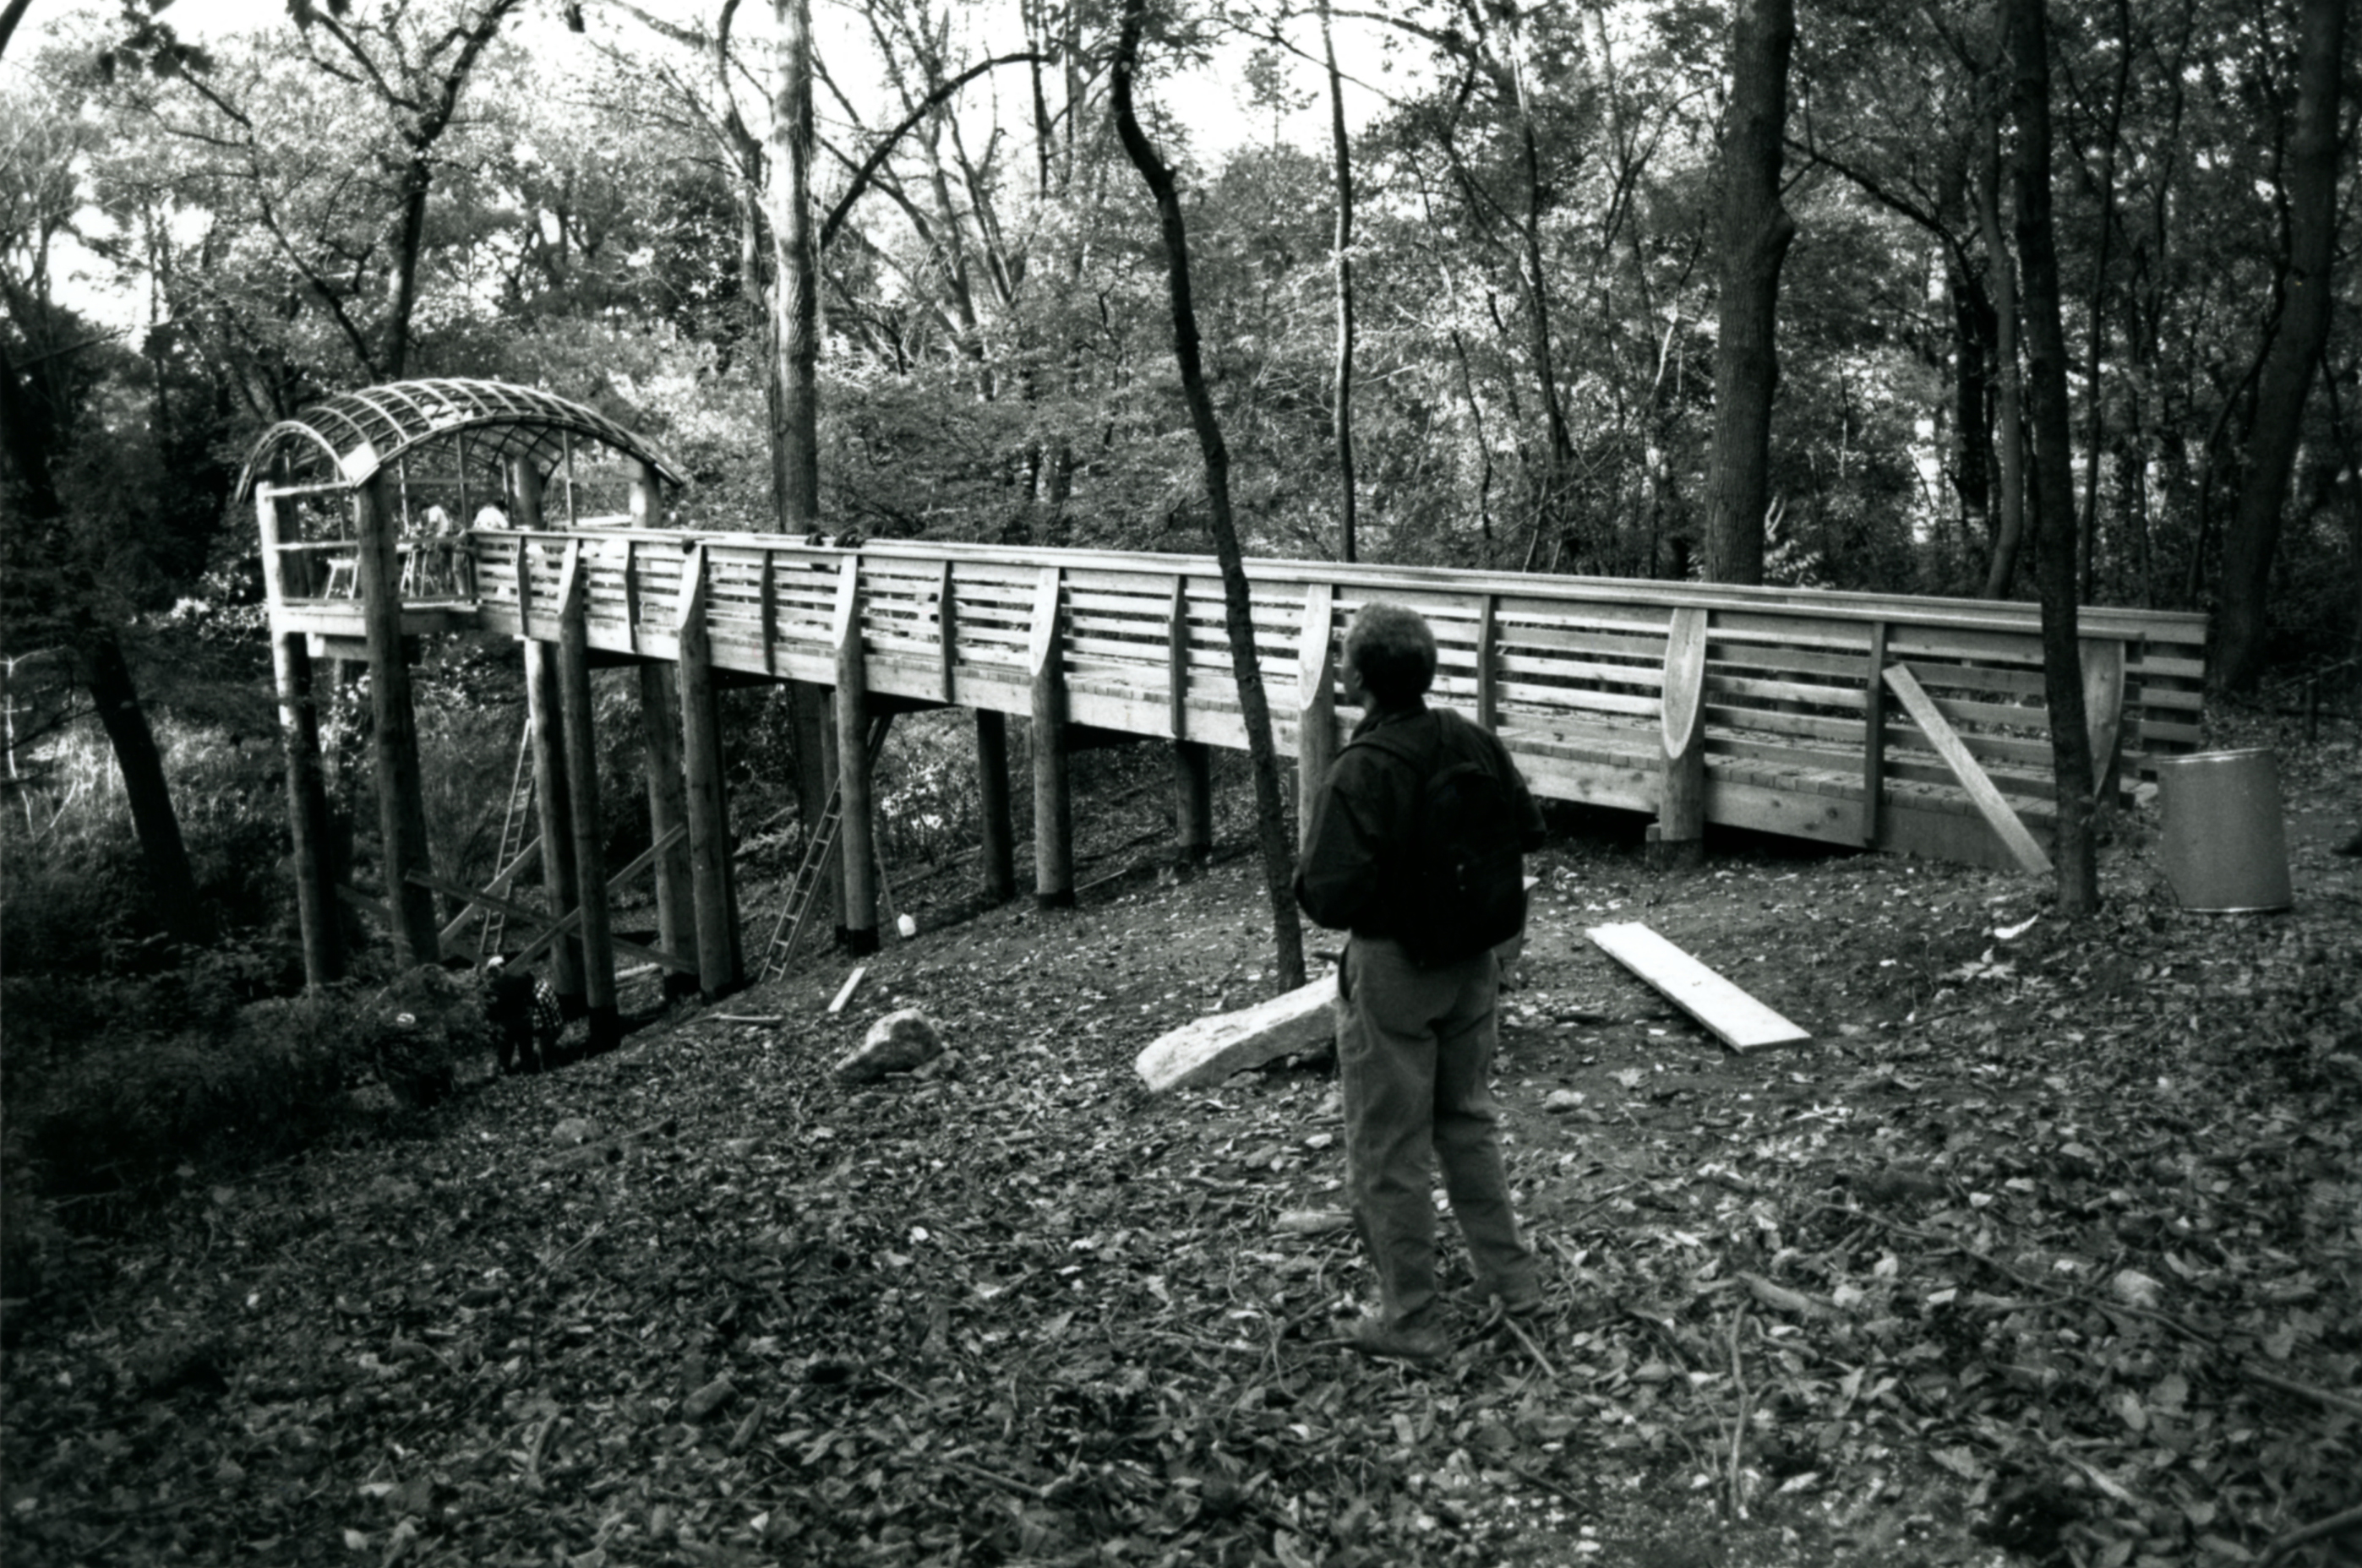 Martin Puryear at Pavilion in the Trees in Fairmount Park